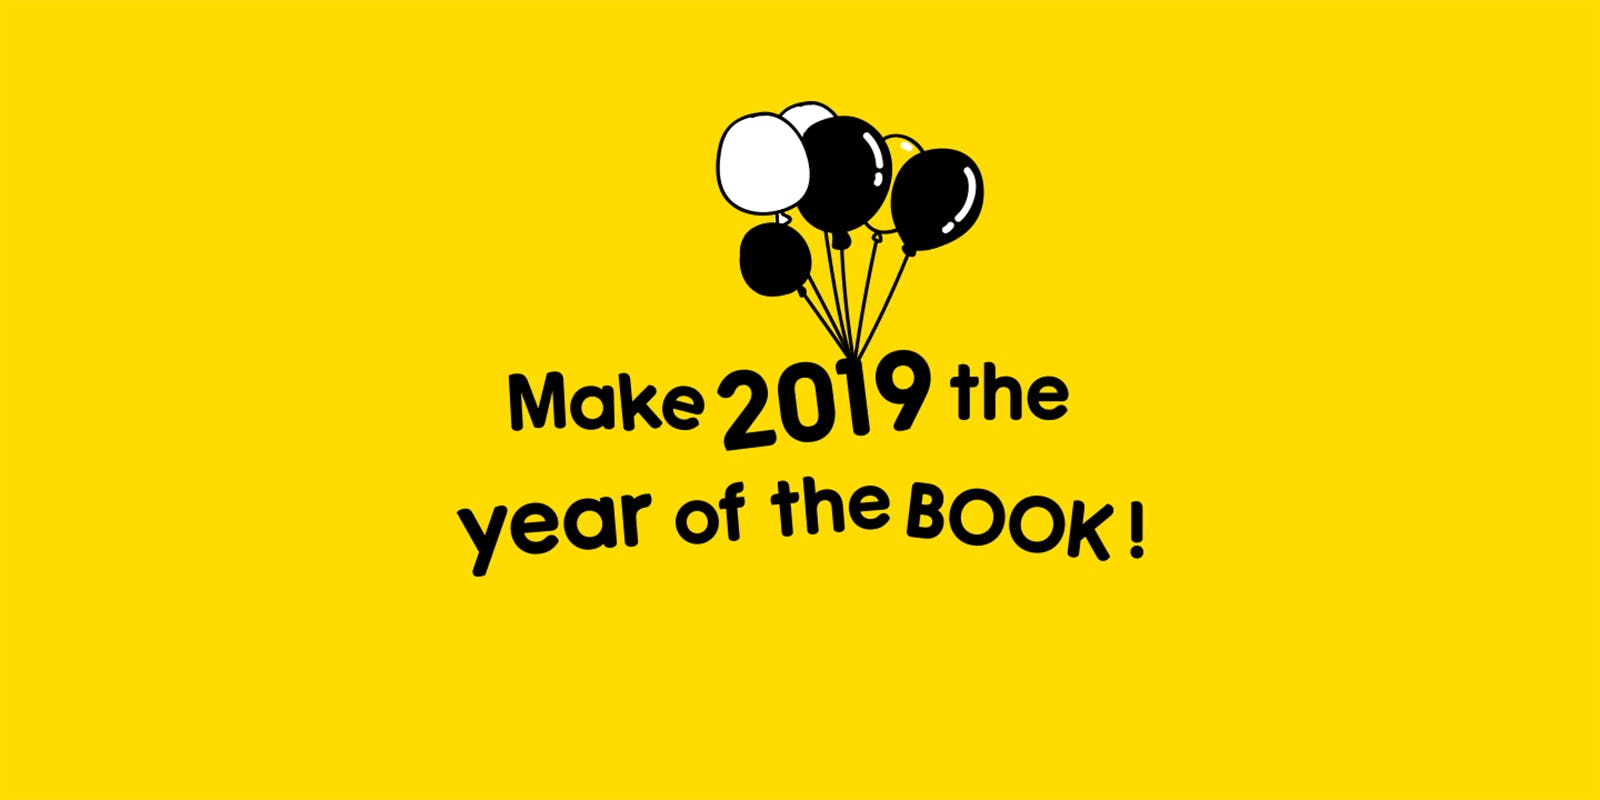 Make 2019 the year of the book!